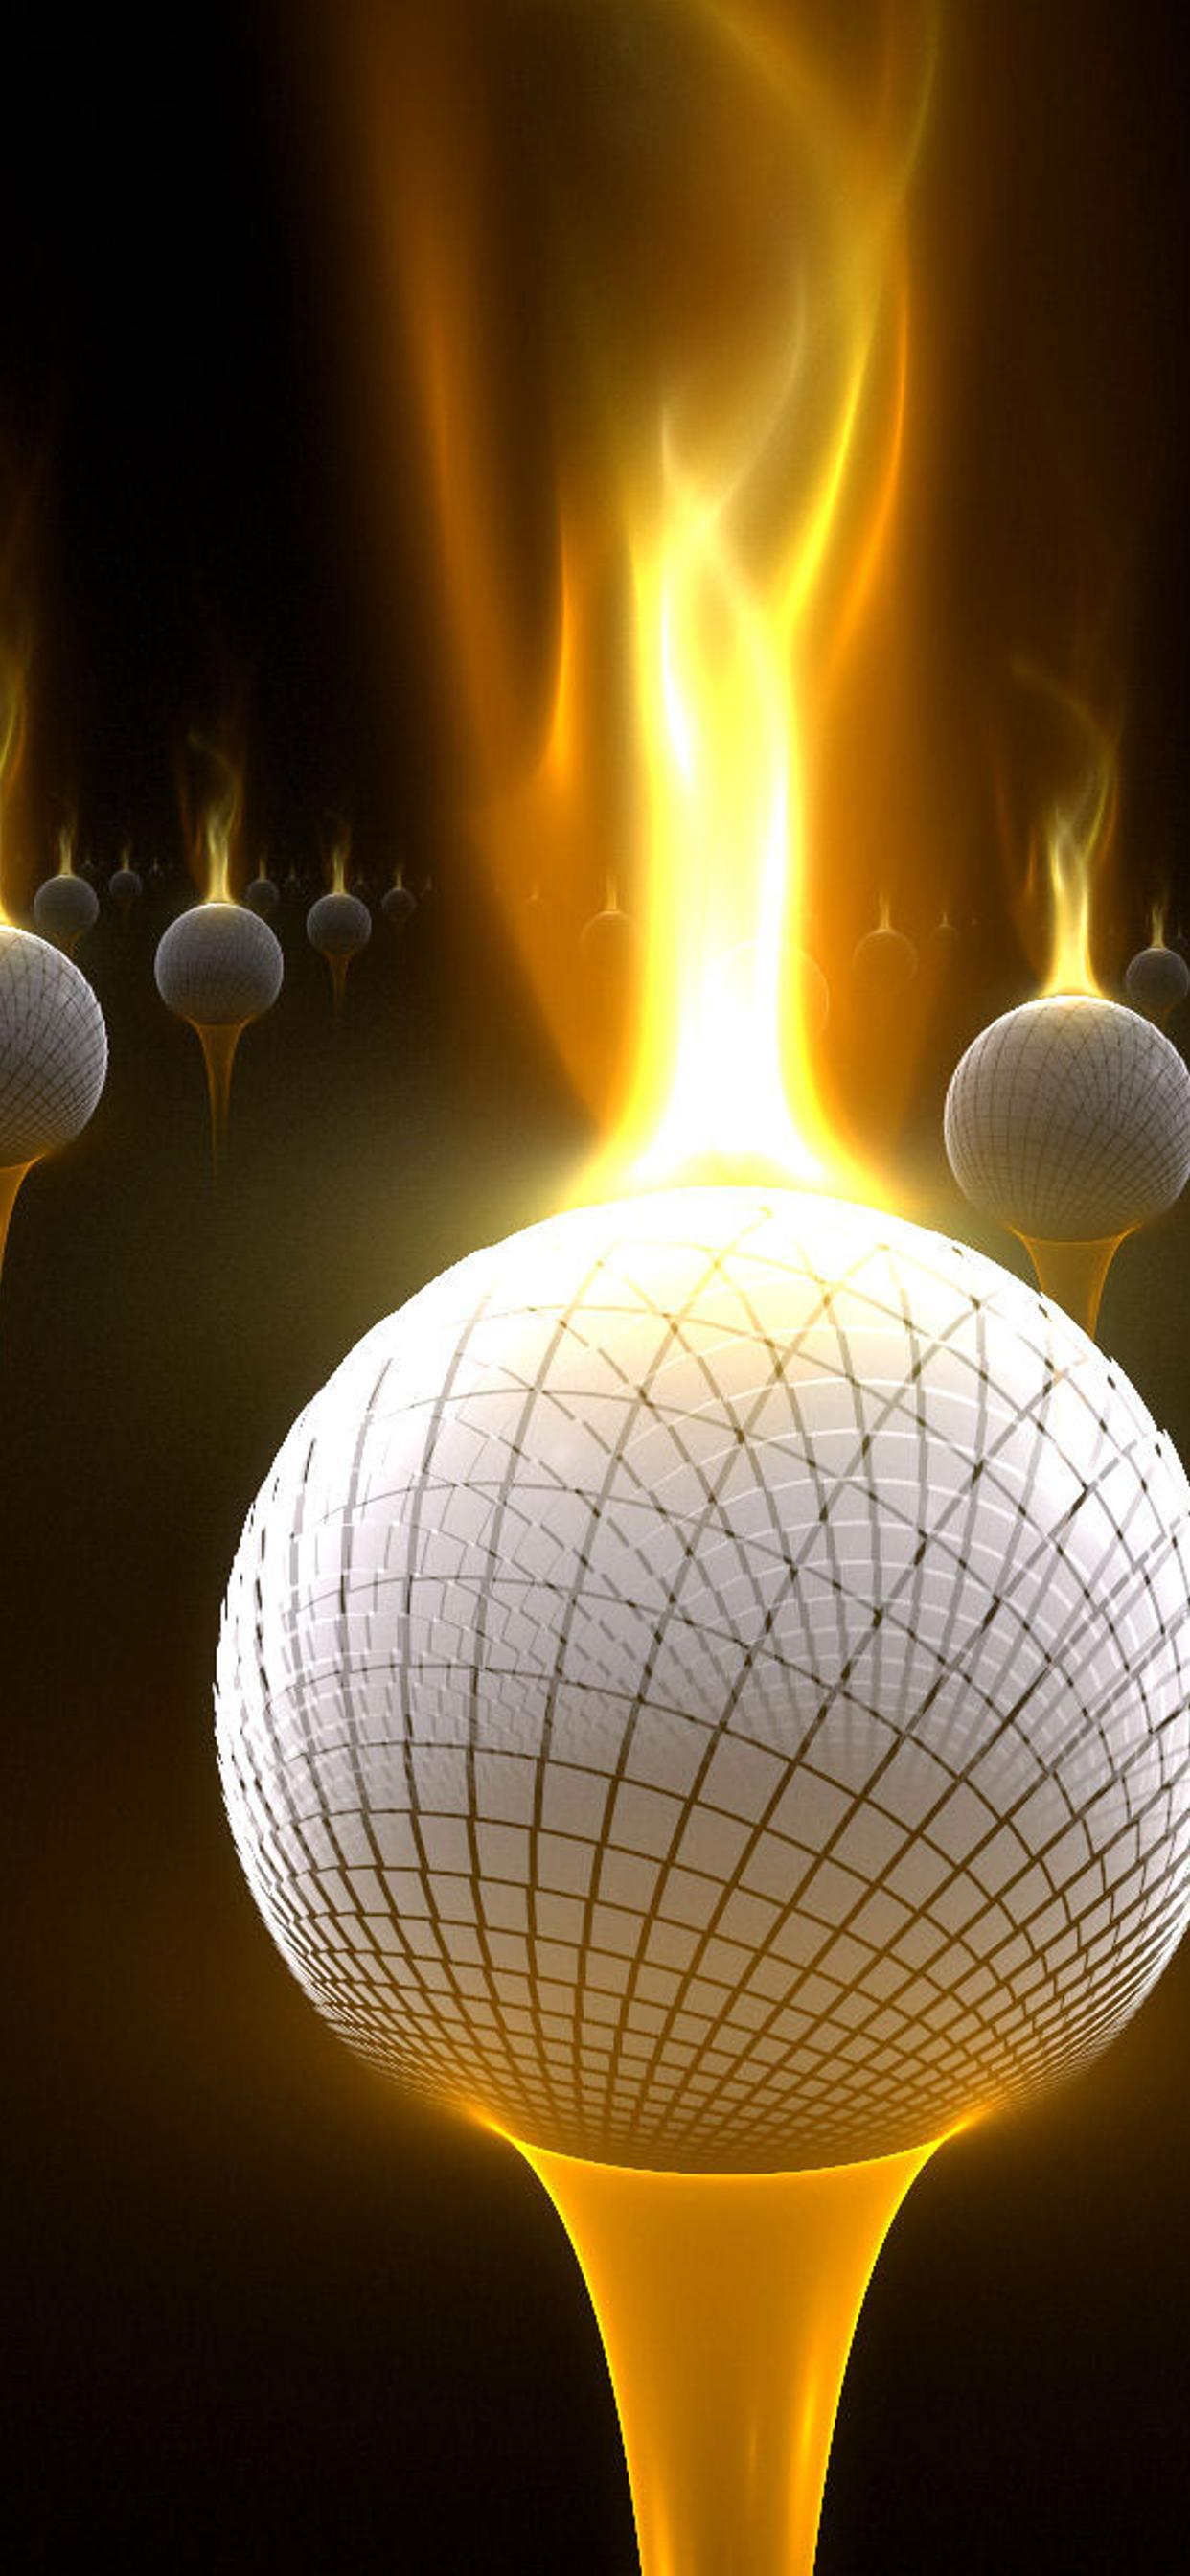 Abstract Golf Balls With Flames